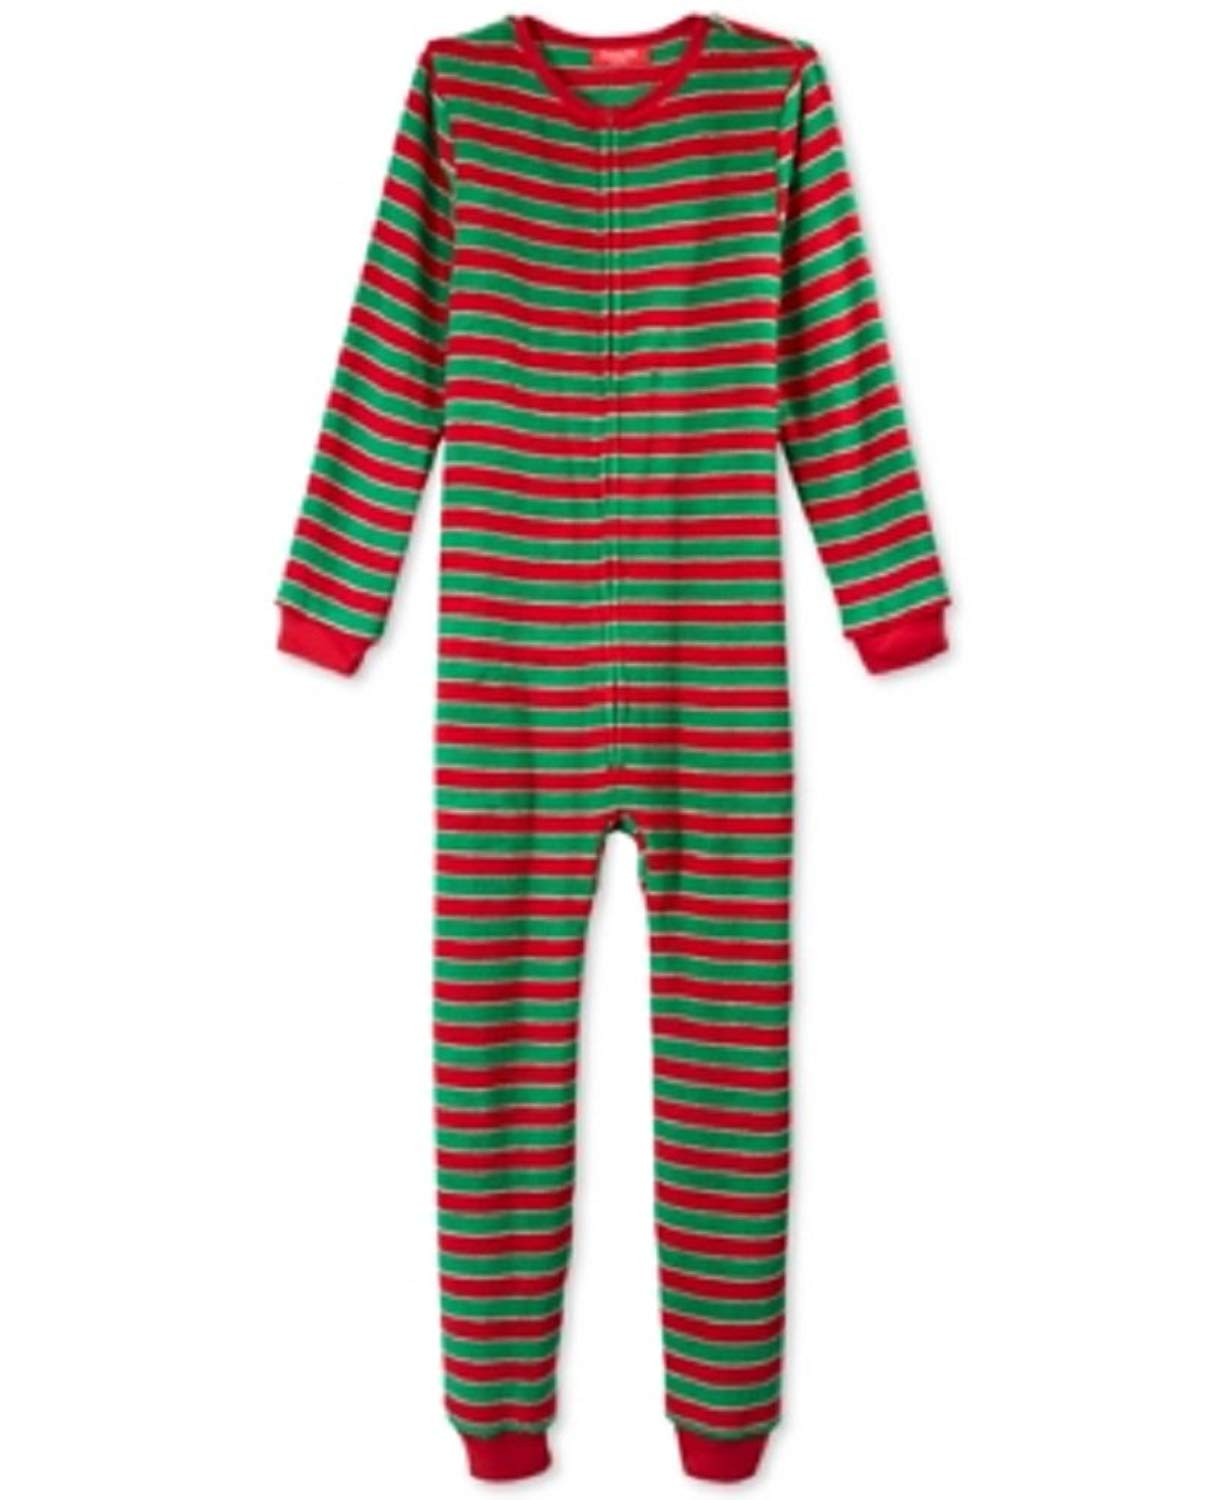 8b5d4dfe76 Get Quotations · Charter Club Kids Holiday Jumpsuit Pajamas Stripe 10-12